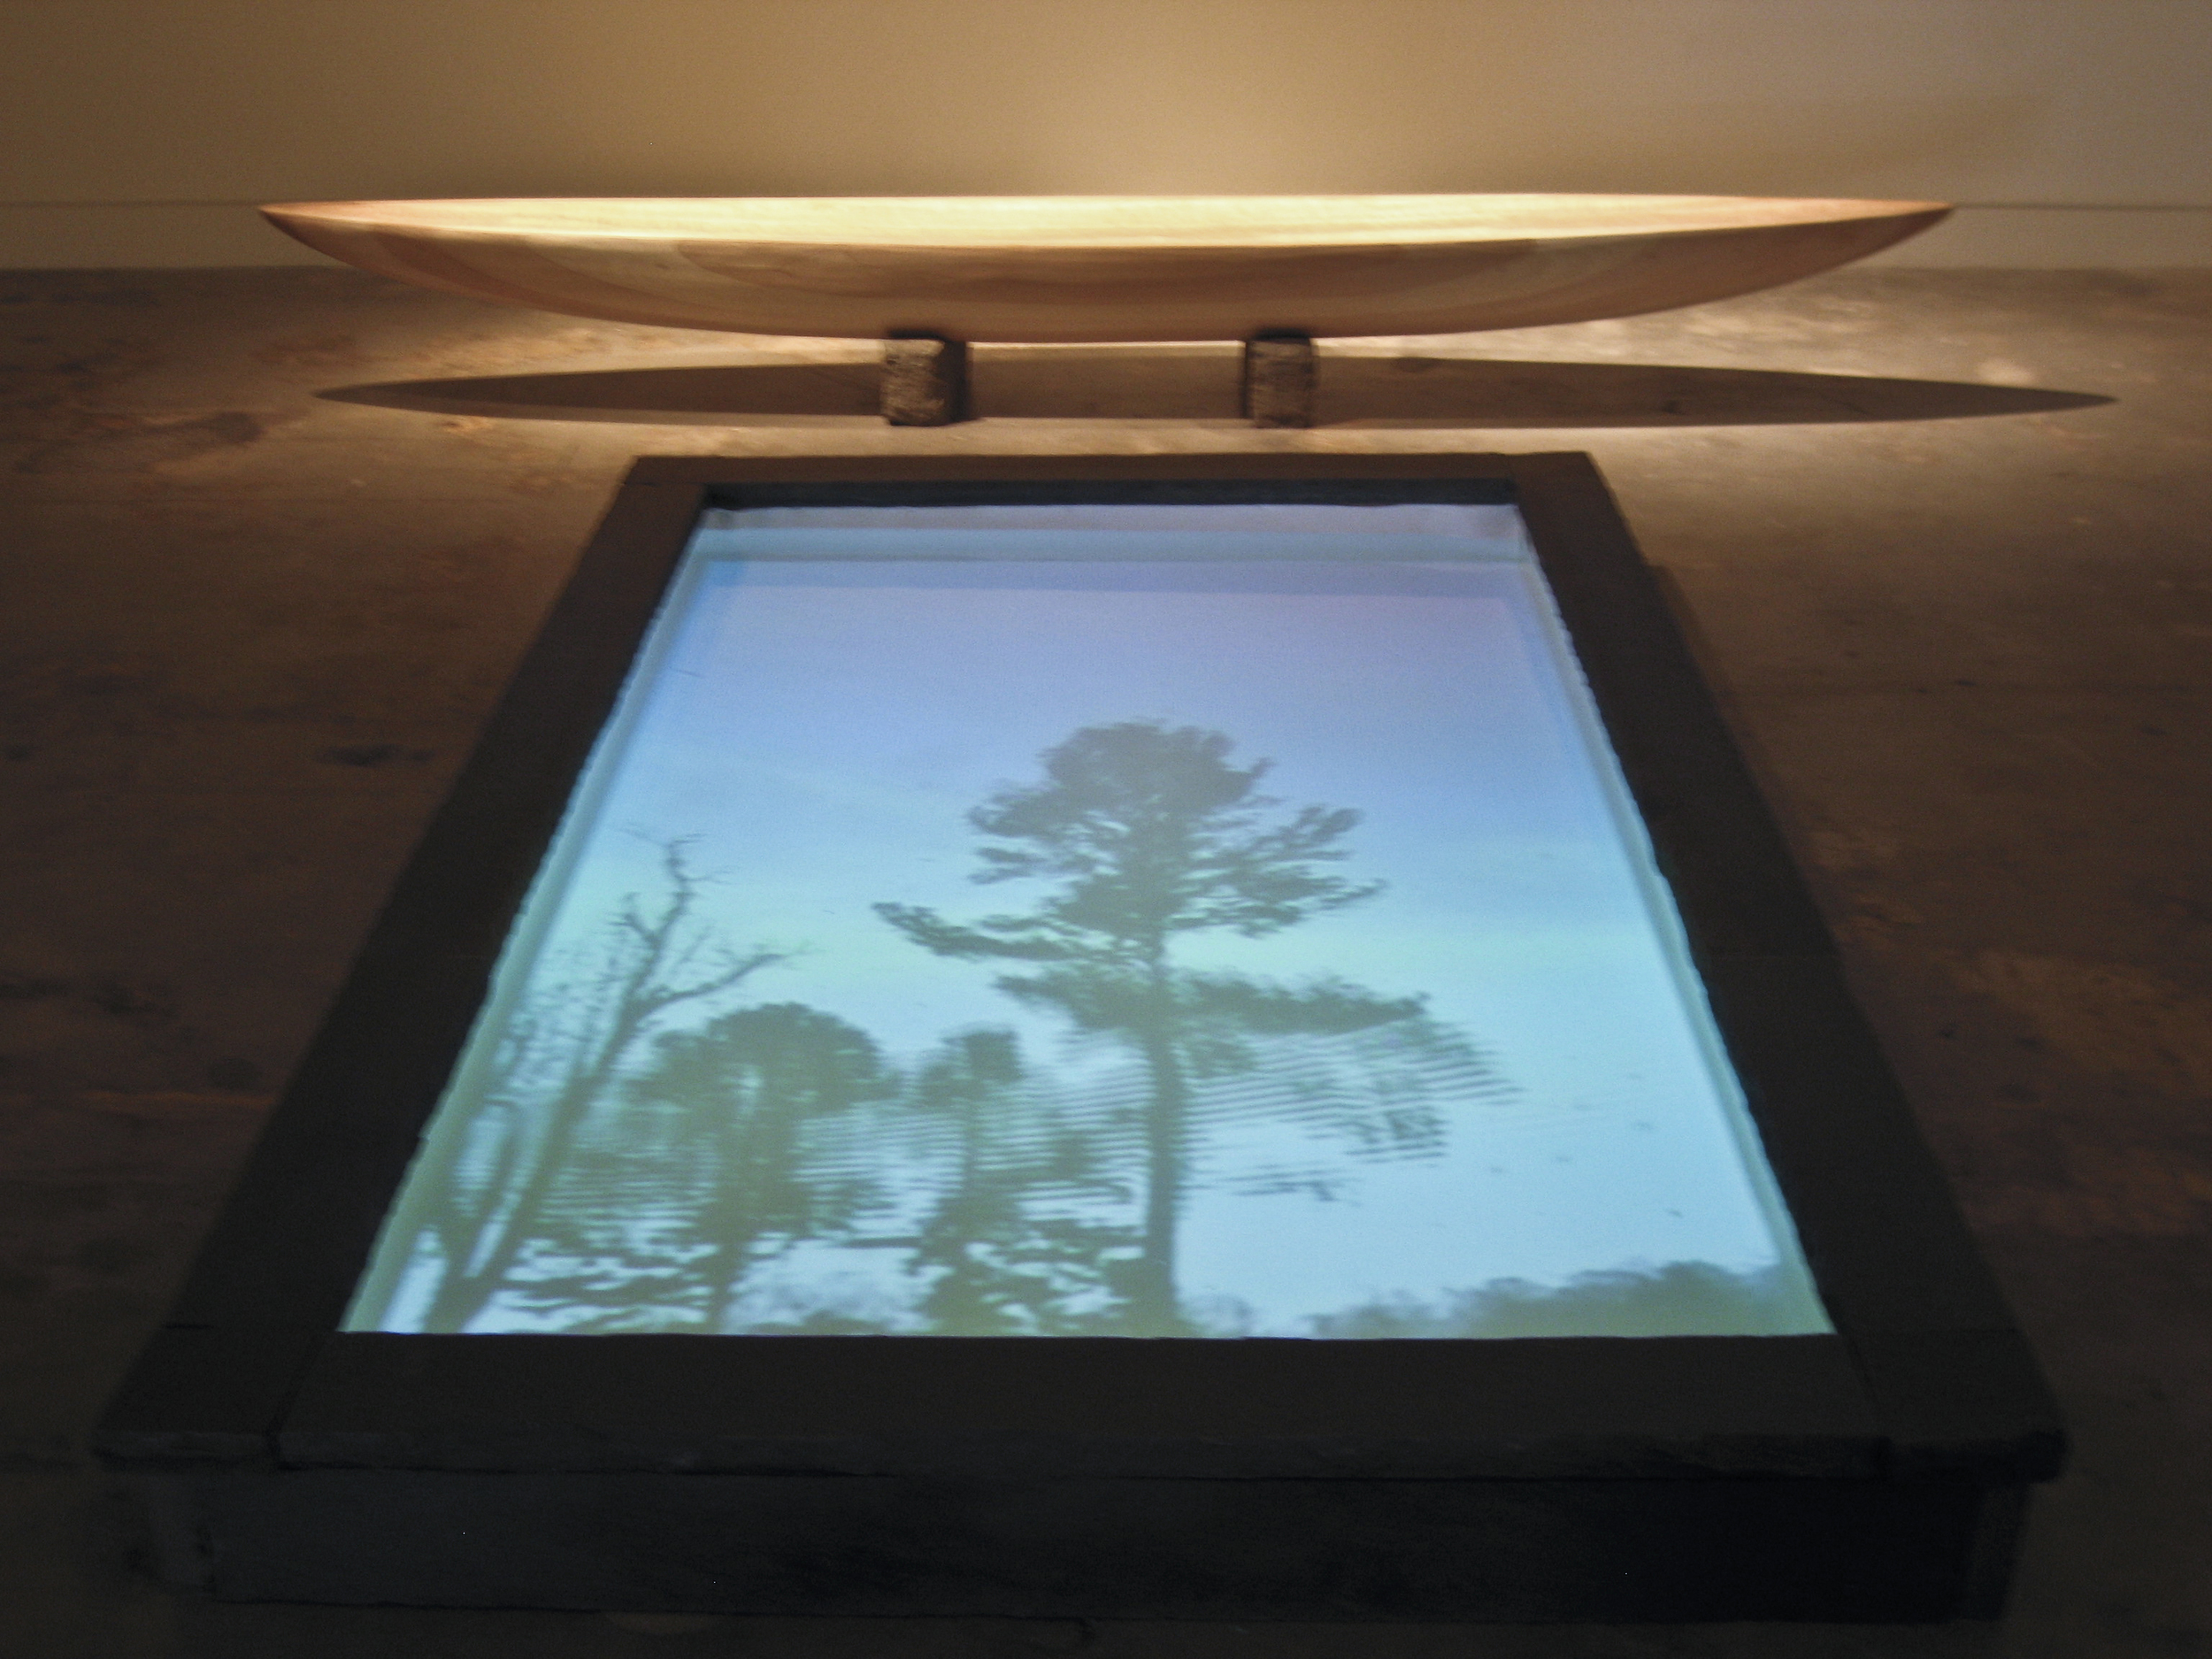 Quotidian Rift,   using sculptural elements and video, delineates its own physical environment, inviting the viewer to contemplate the nature of time and his/her own particular relationship to its passage.  These elements include: an iconic water vessel form carved in basswood, a shallow pool bound by layers of stacked slate, and a video projected from above into the pool of water below. Contents of the video include layers of sound and image referring to our experience of time, as its pace enables the viewer to savor the experience through gazing into the reflection pool.